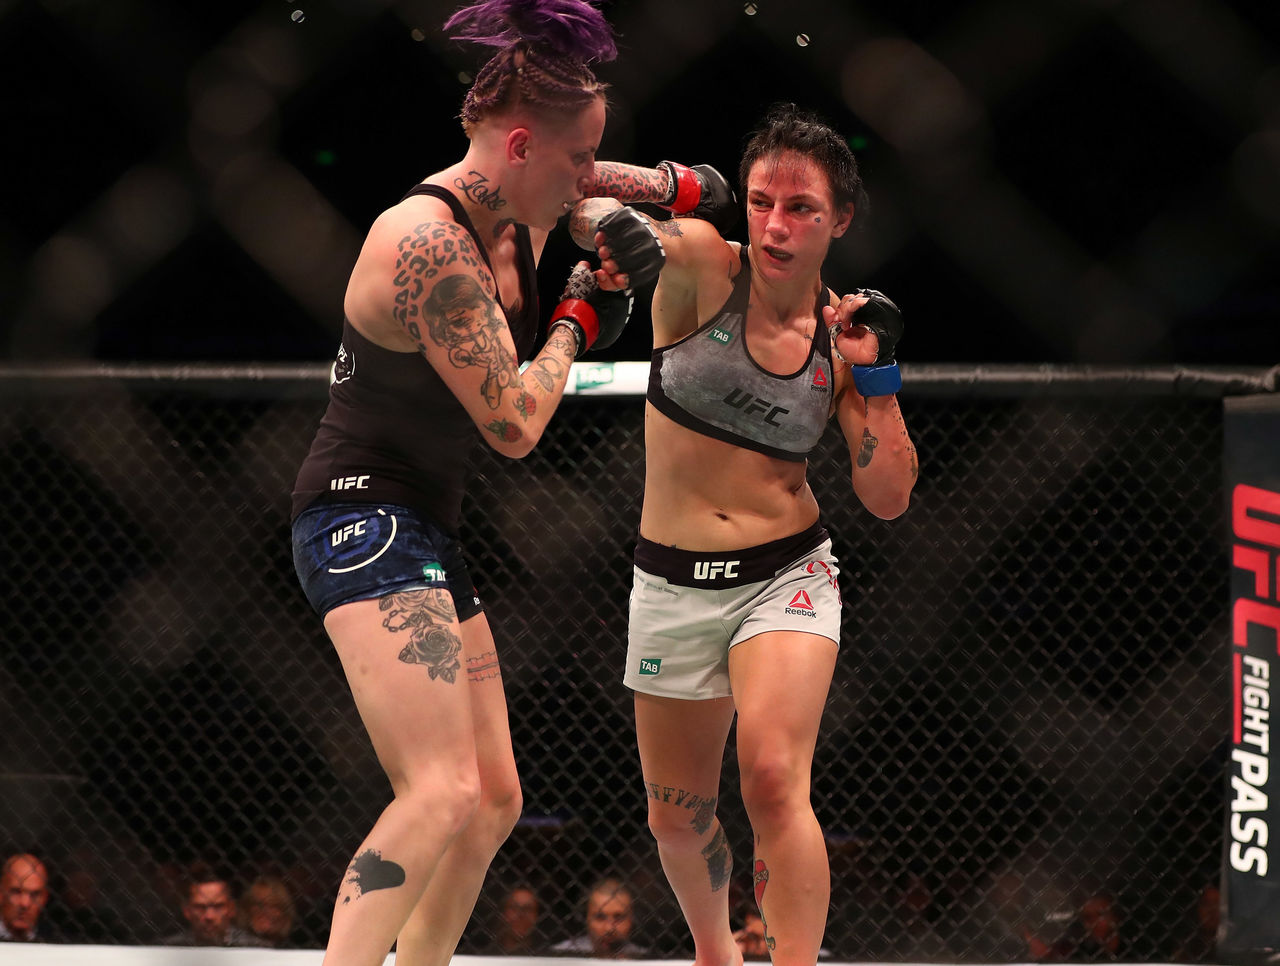 Cropped 2017 11 19t054606z 636908258 nocid rtrmadp 3 mma ufc fight night sydney rawlings vs clark